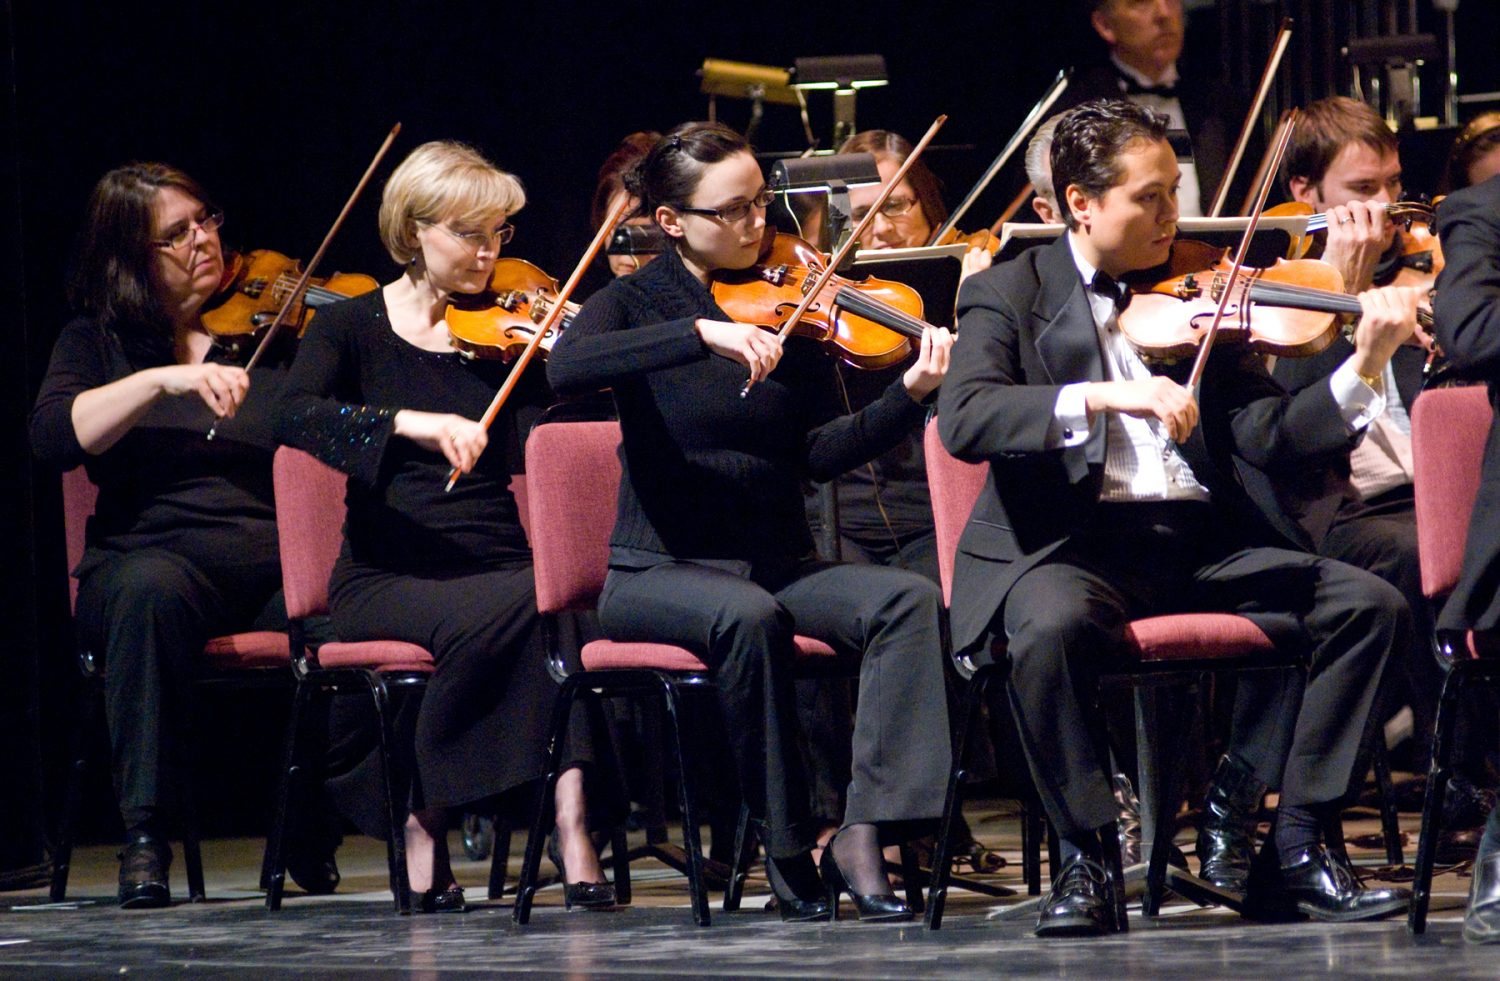 Performing Arts Series, Part 3: Mansfield Symphony Orchestra and Chorus